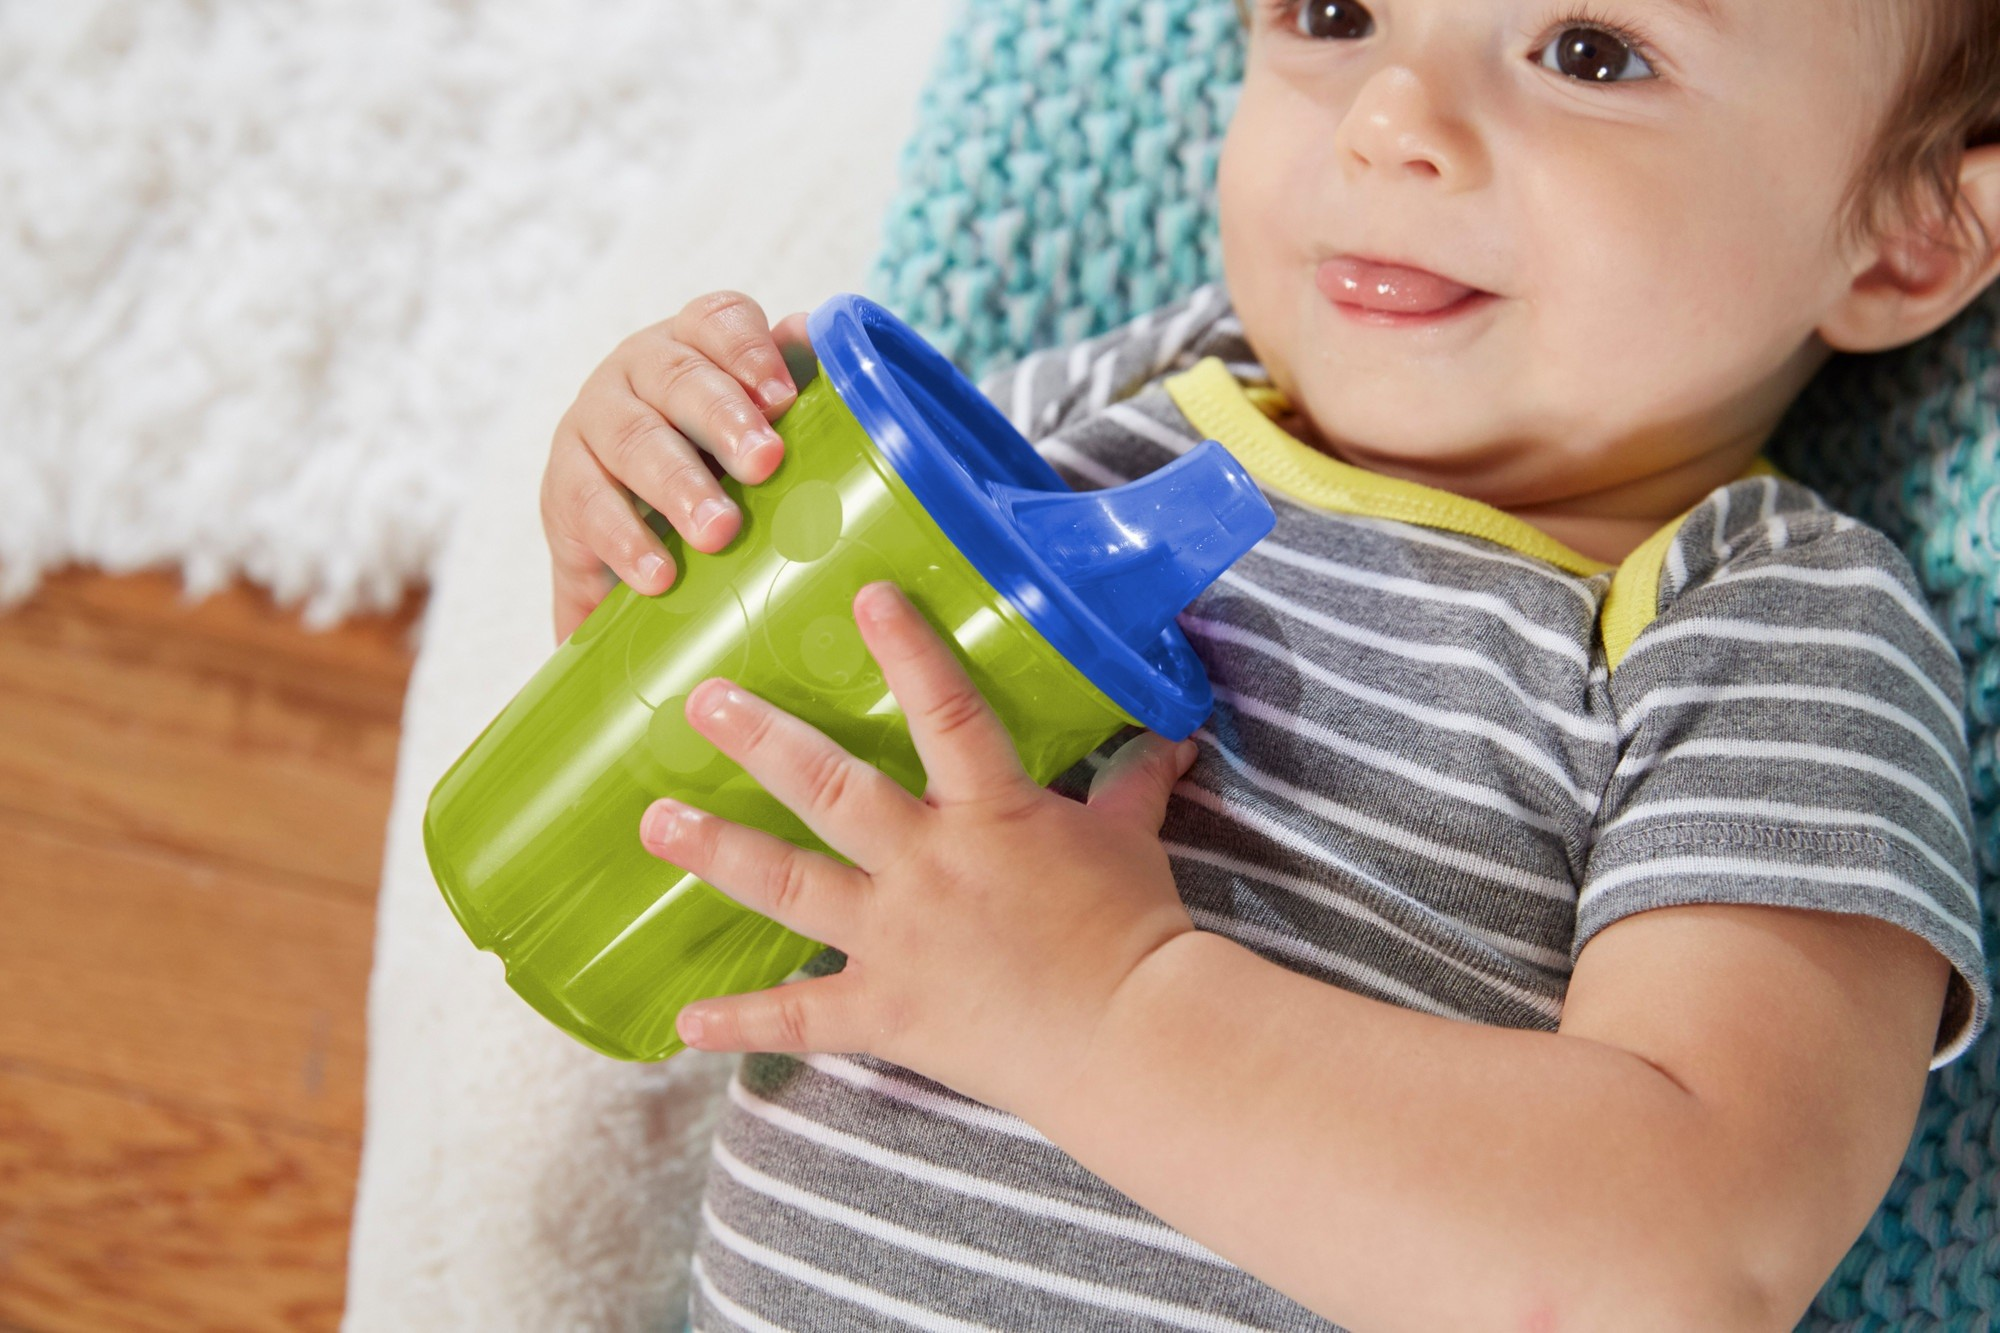 TFY USA BPA-Free Take & Toss 4 Sippy Cups for toddler age 9